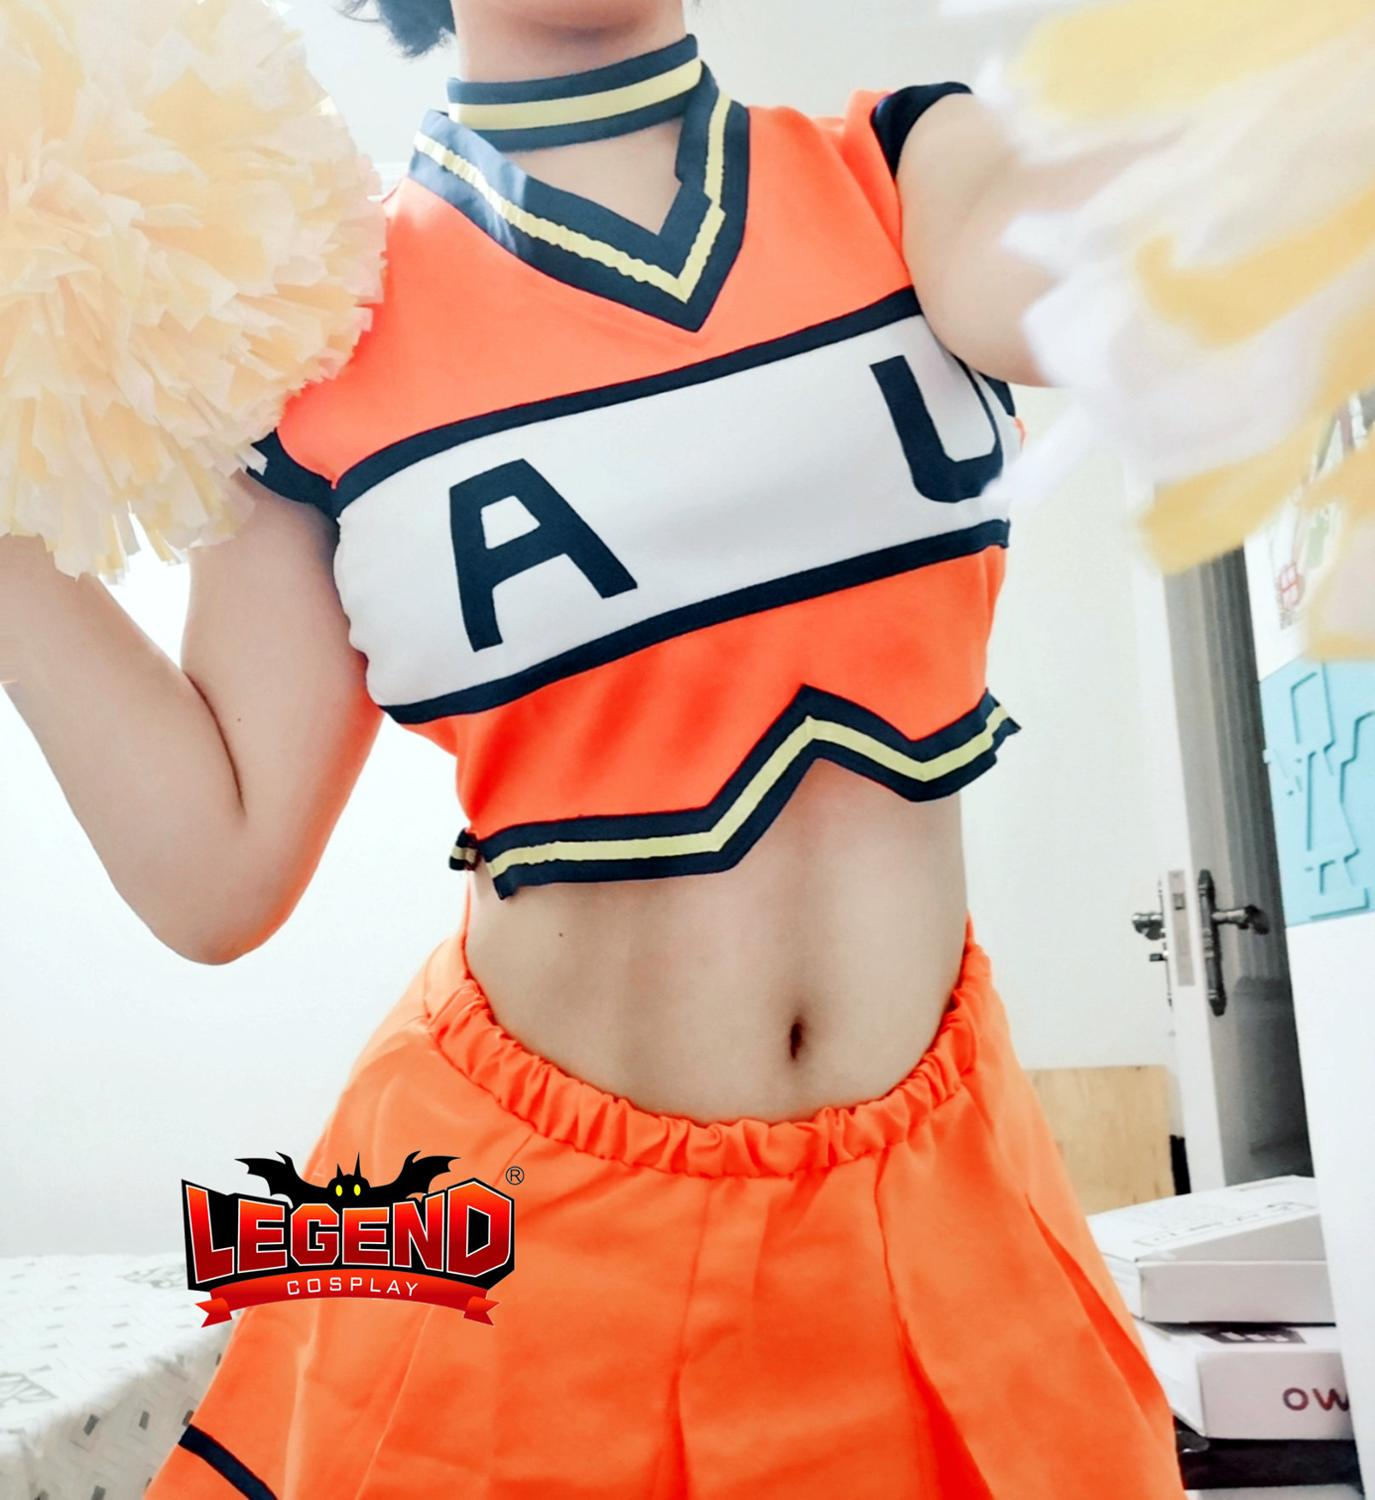 411bac Buy Cosplay Momo And Get Free Shipping Pl Clubkingz Org